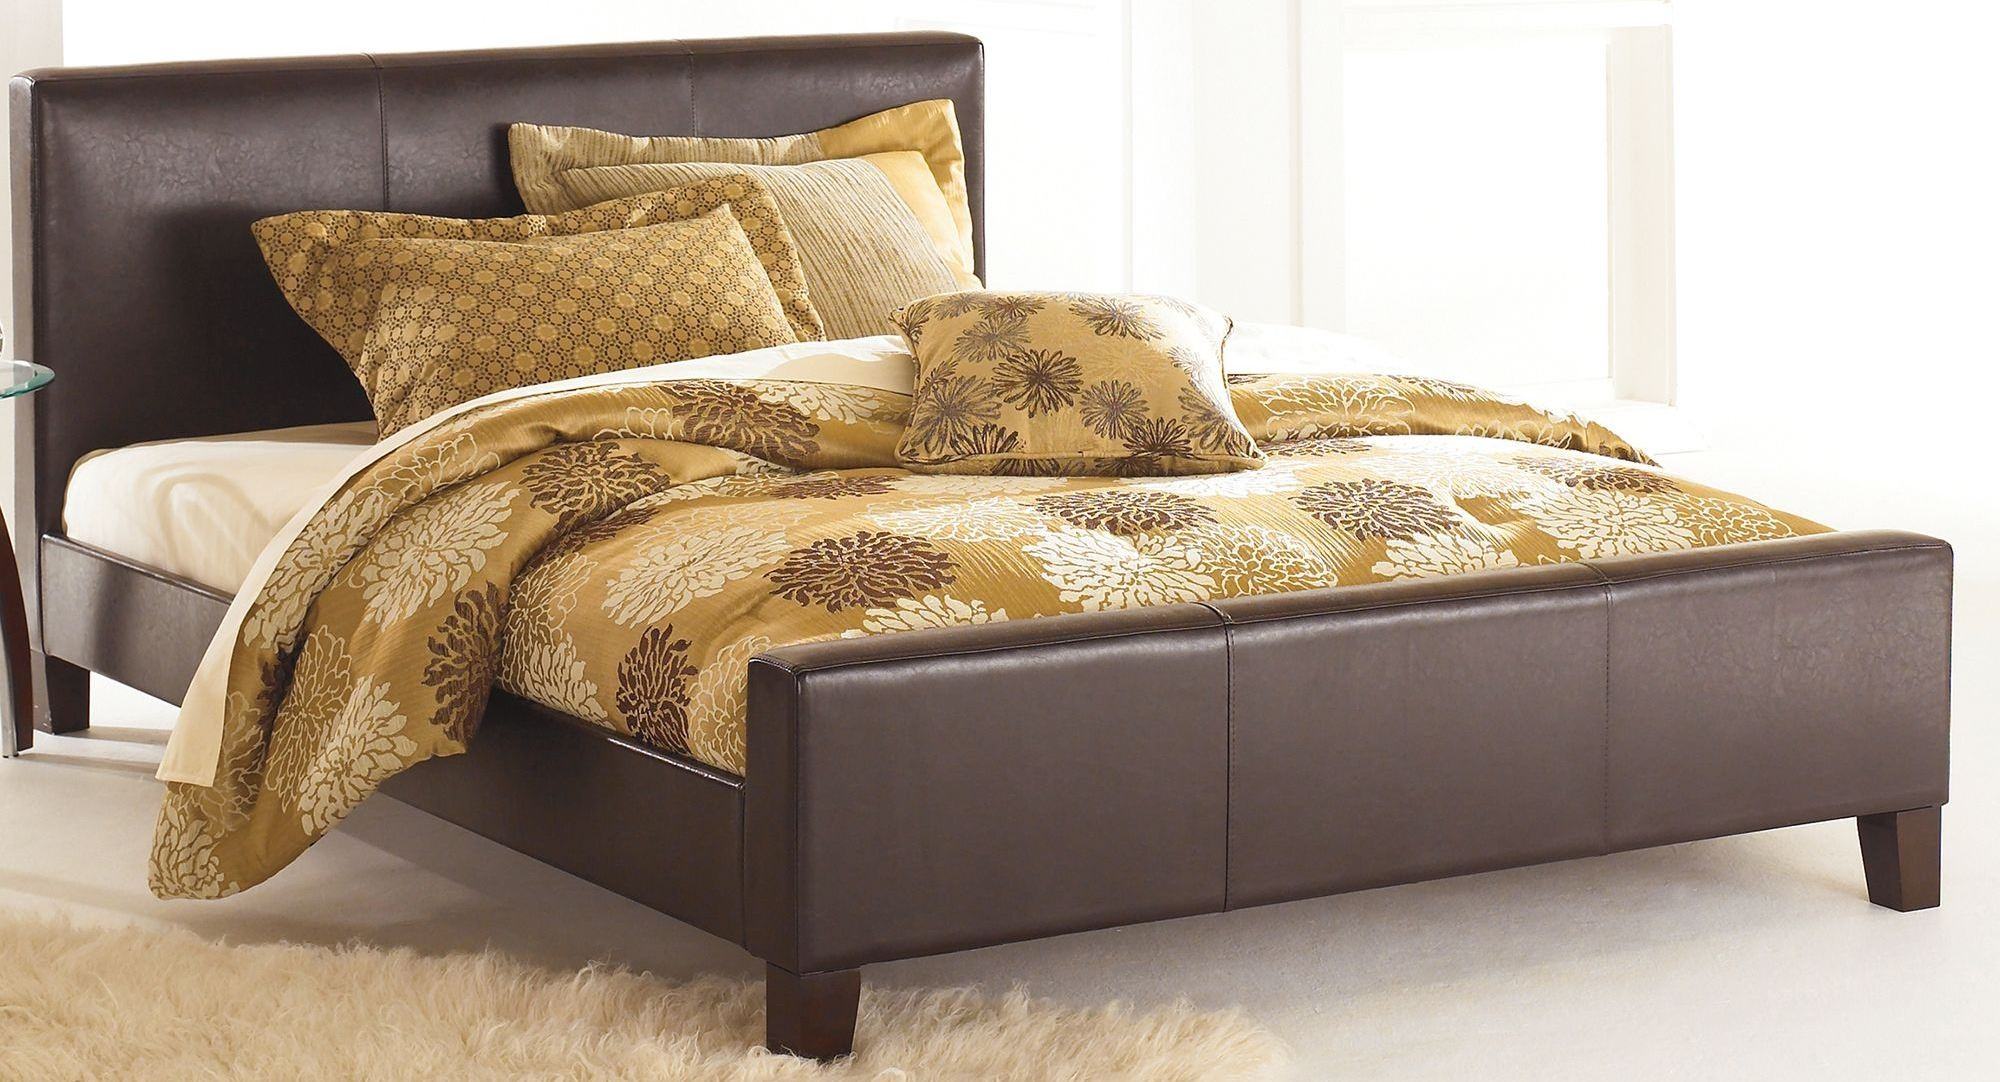 Euro Sable King Ornamental Platform Bed, B91L76, Fashion Bed Group